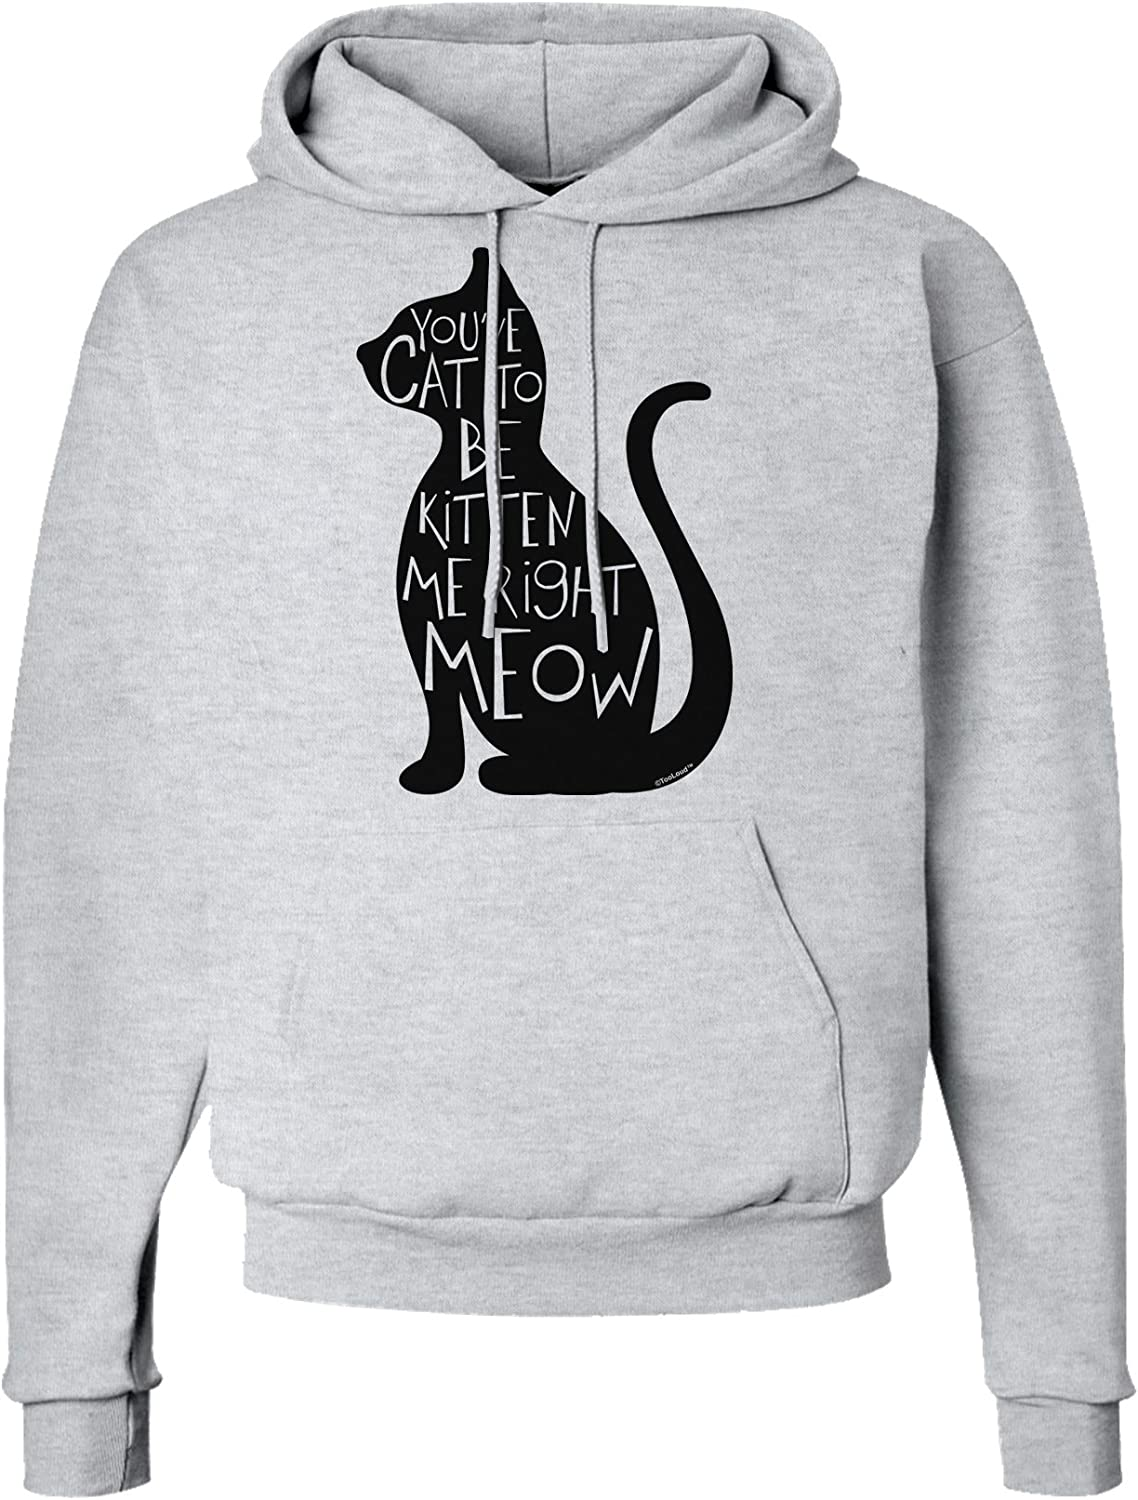 TOOLOUD Youve Cat to Be Kitten Me Right Meow Hoodie Sweatshirt